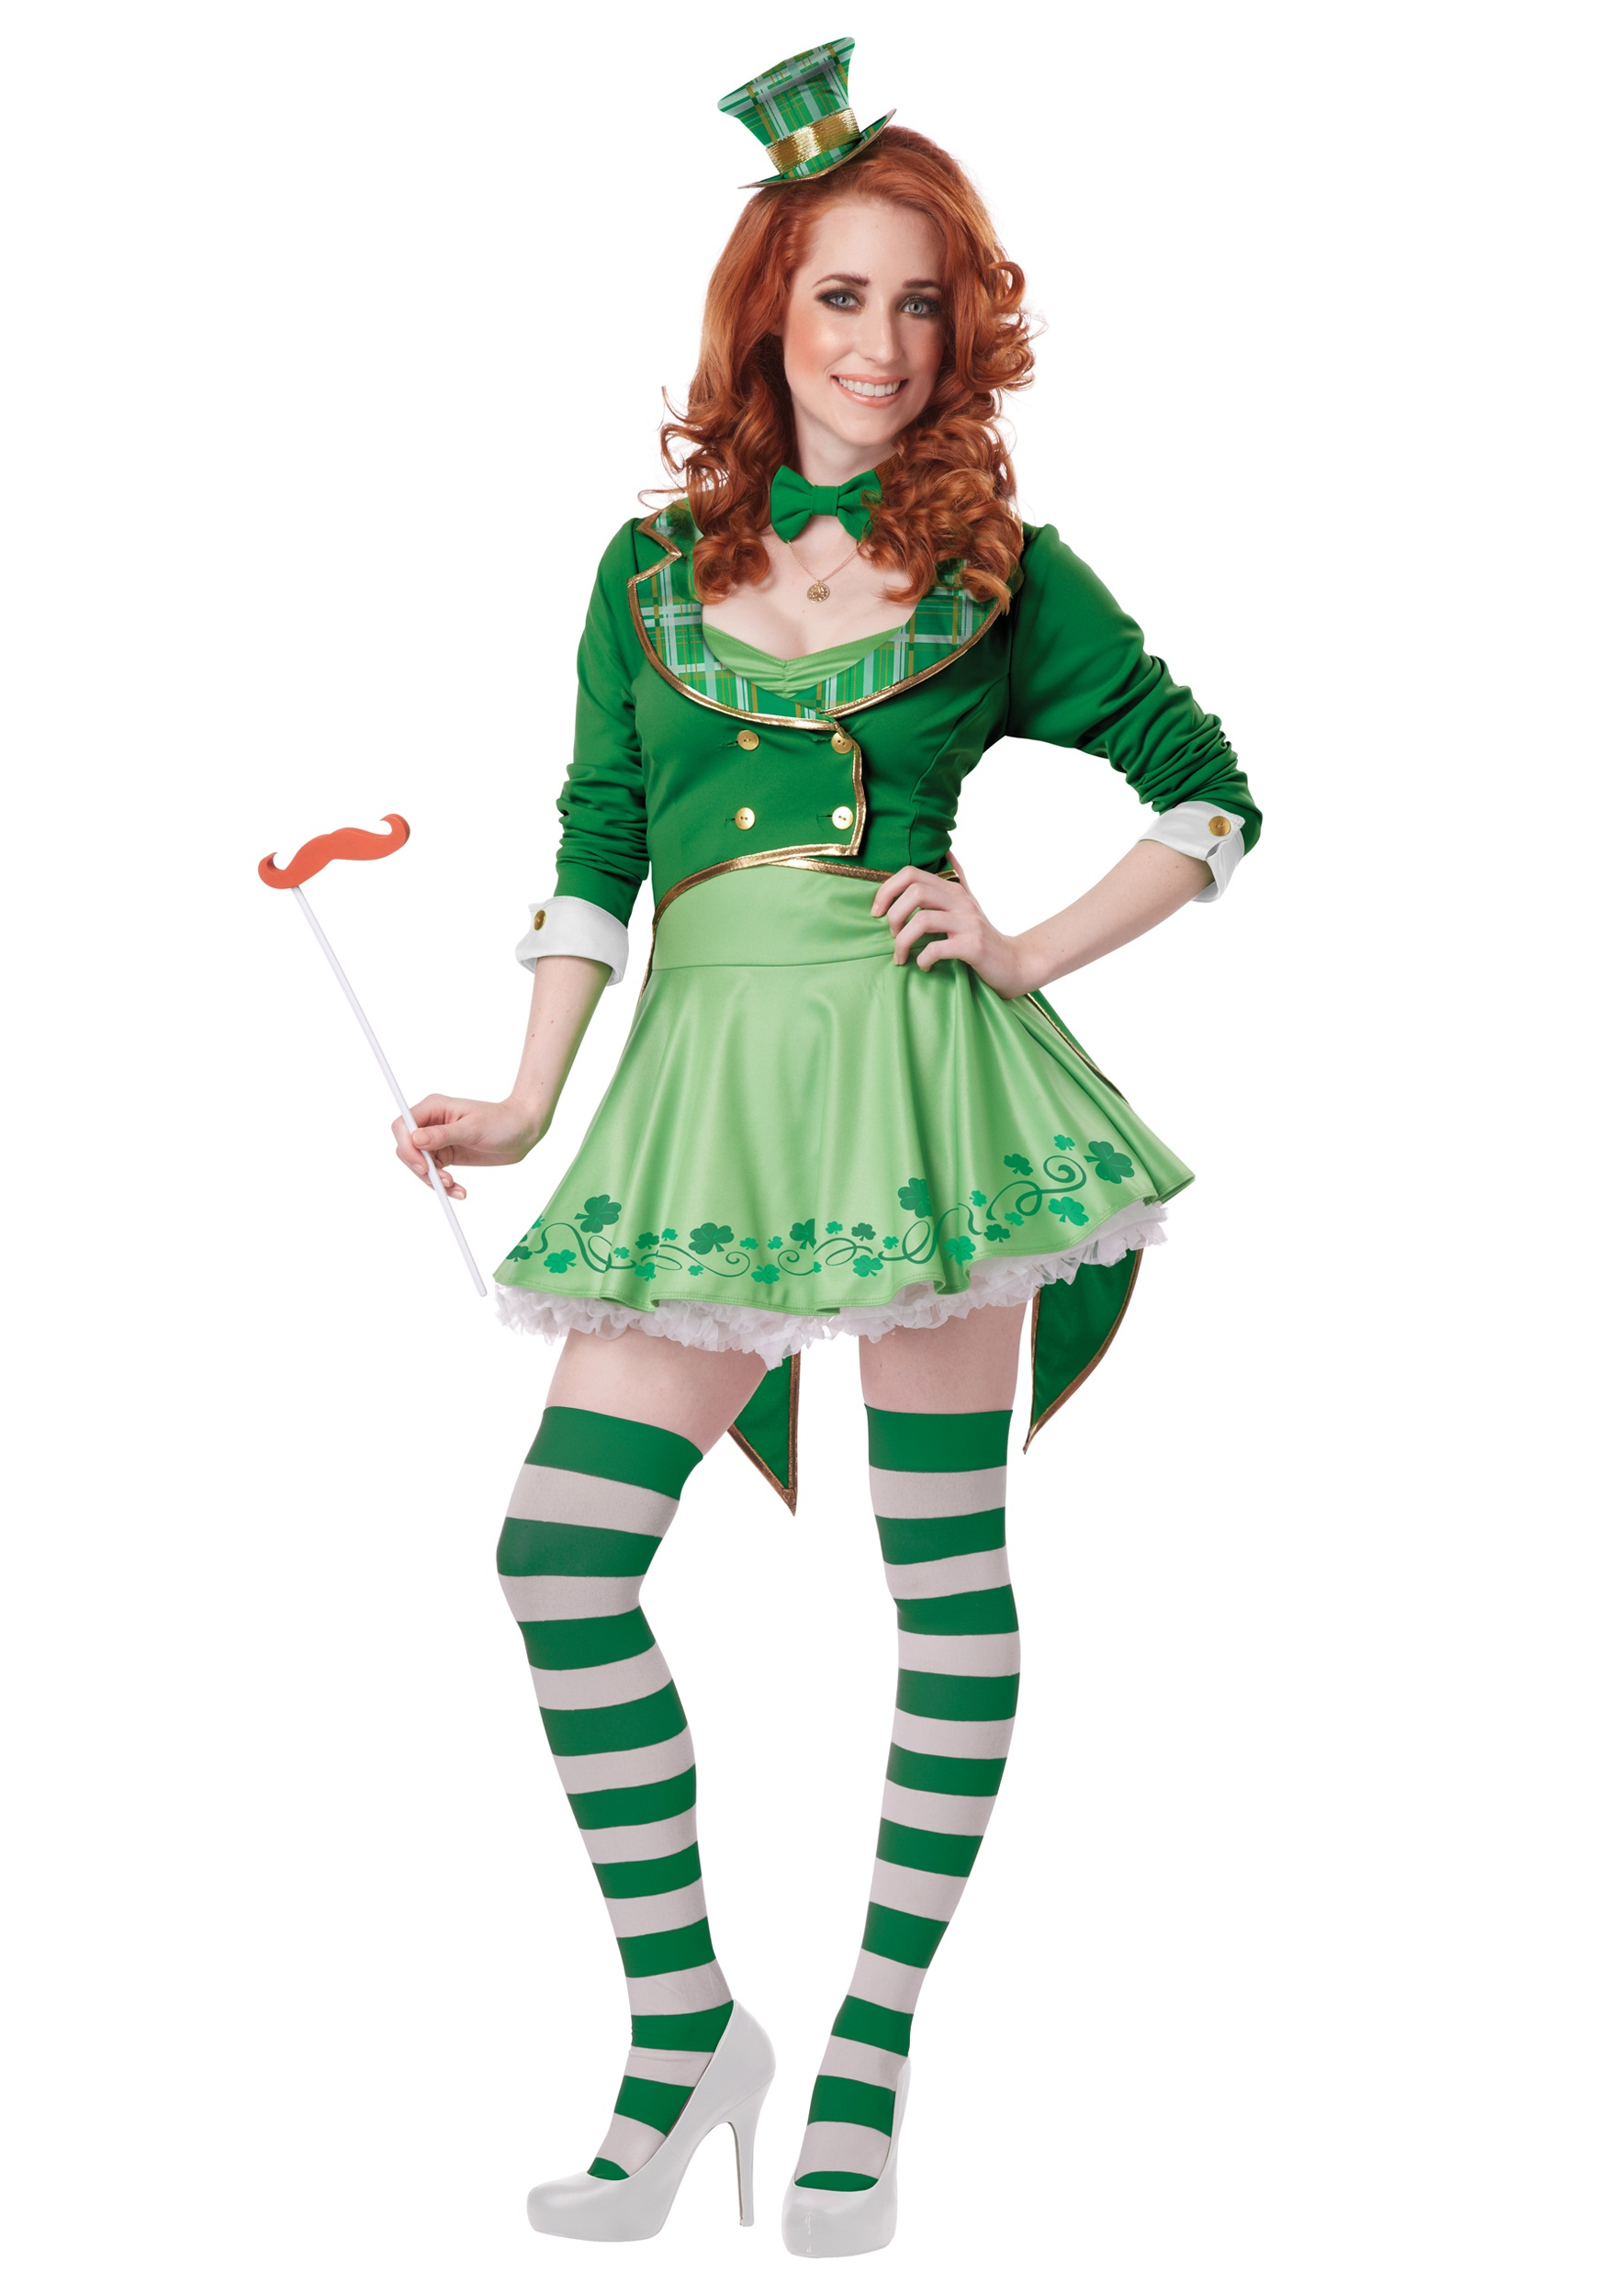 lucky charm women 39 s leprechaun costume. Black Bedroom Furniture Sets. Home Design Ideas